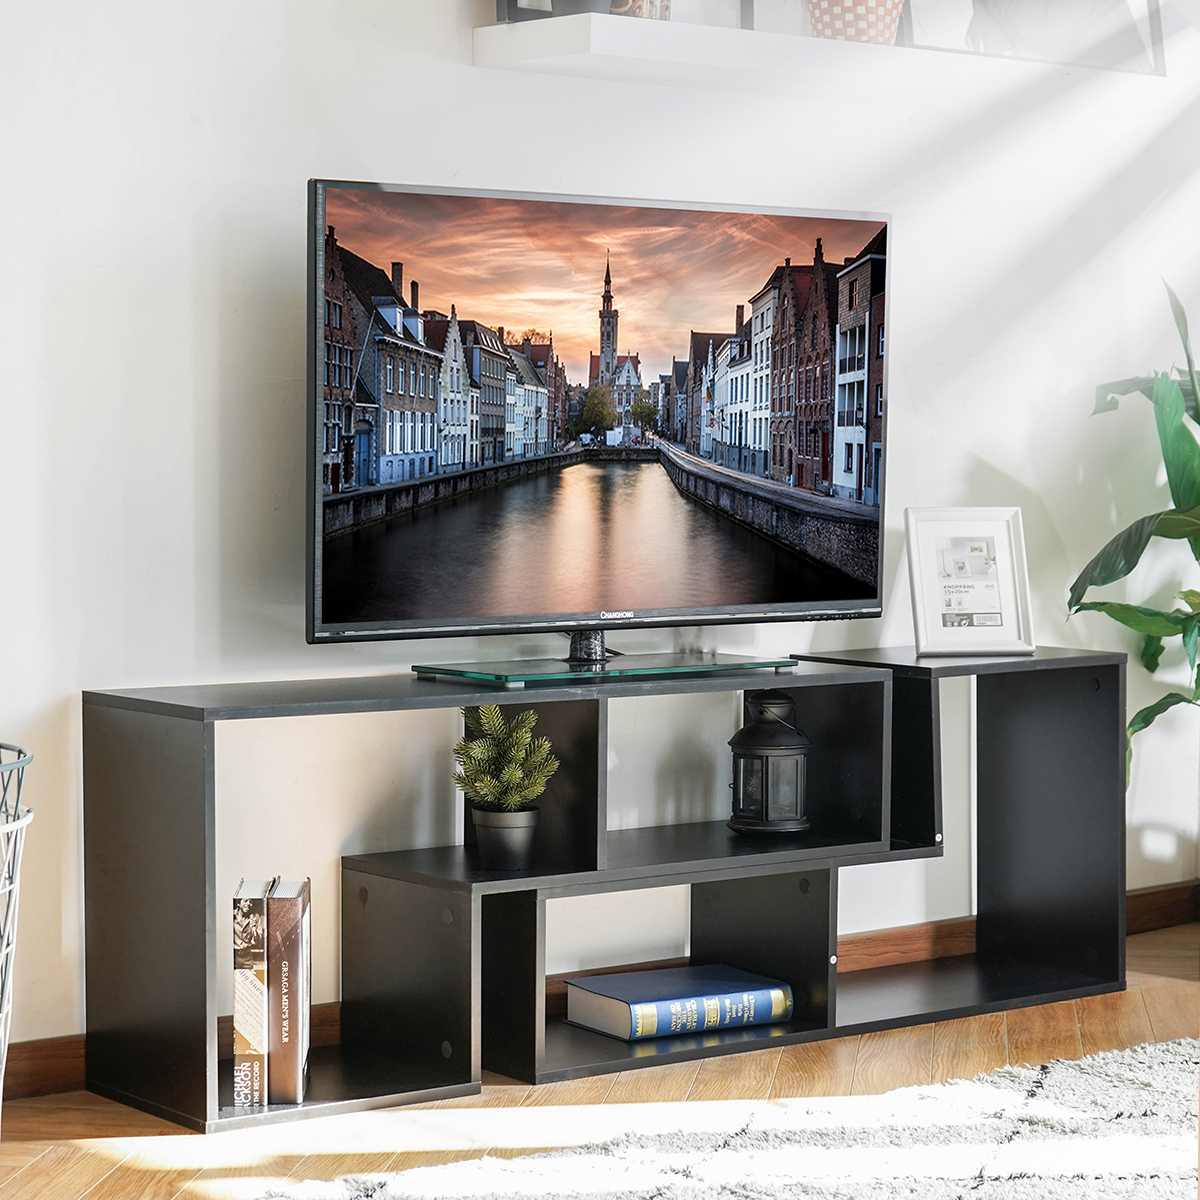 TV Cabinet Simple Combination TV Stand Storage Shelf Bookshelf Modern LCD TV Support For Home Study Bedroom Living Room Office